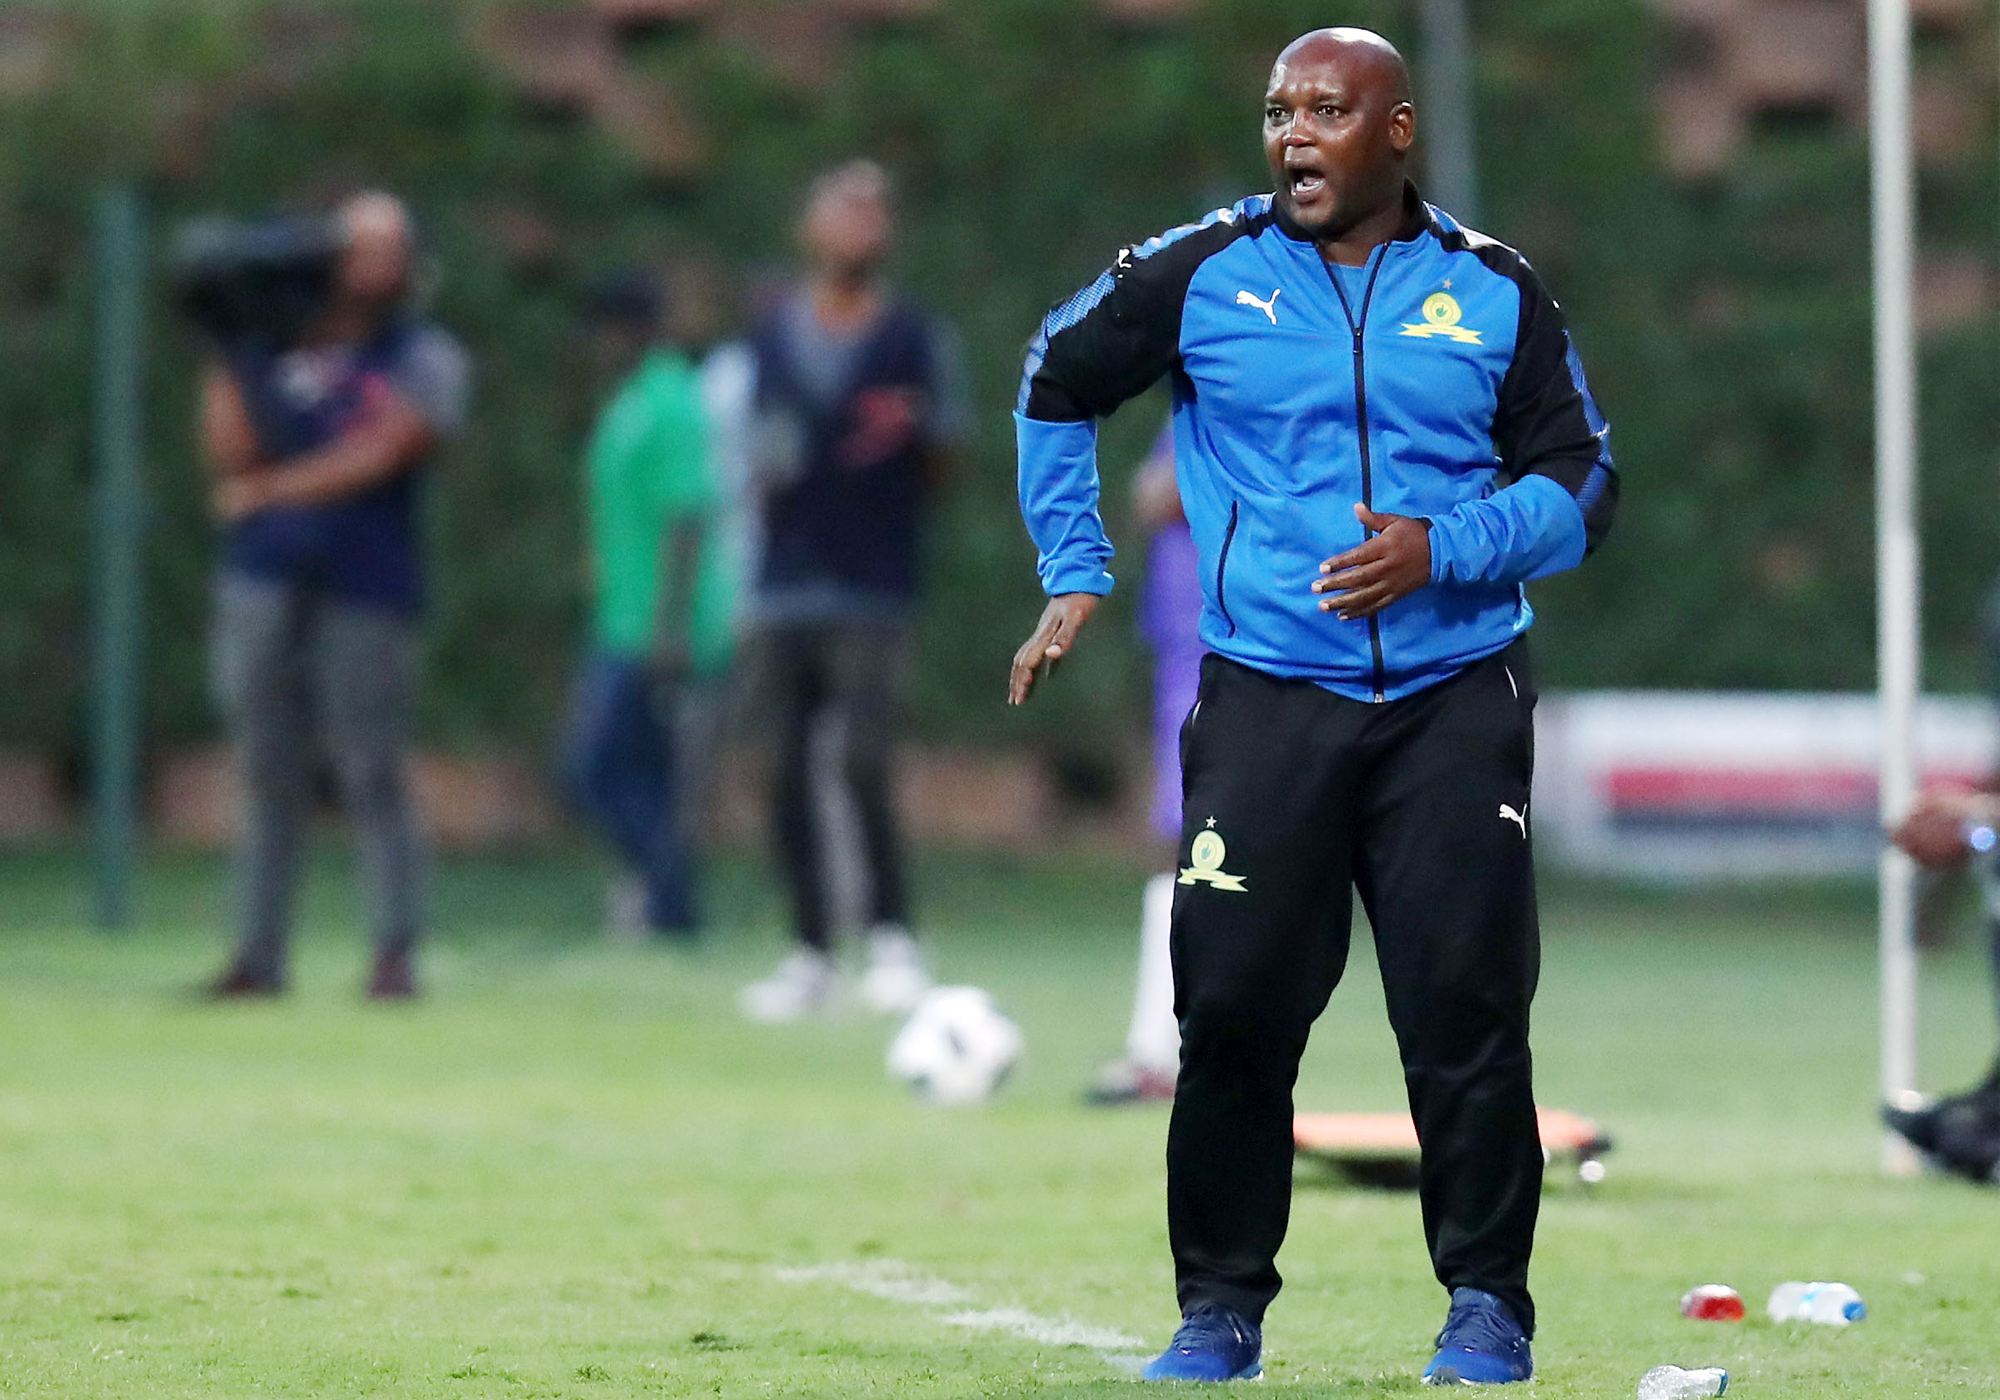 Mamelodi Sundowns  Caf Champions League campaign started on the good note  with coach Pitso Mosimane receiving an invitation from Caf s President  Ahmad Ahmad ... 7f4569032f7e6